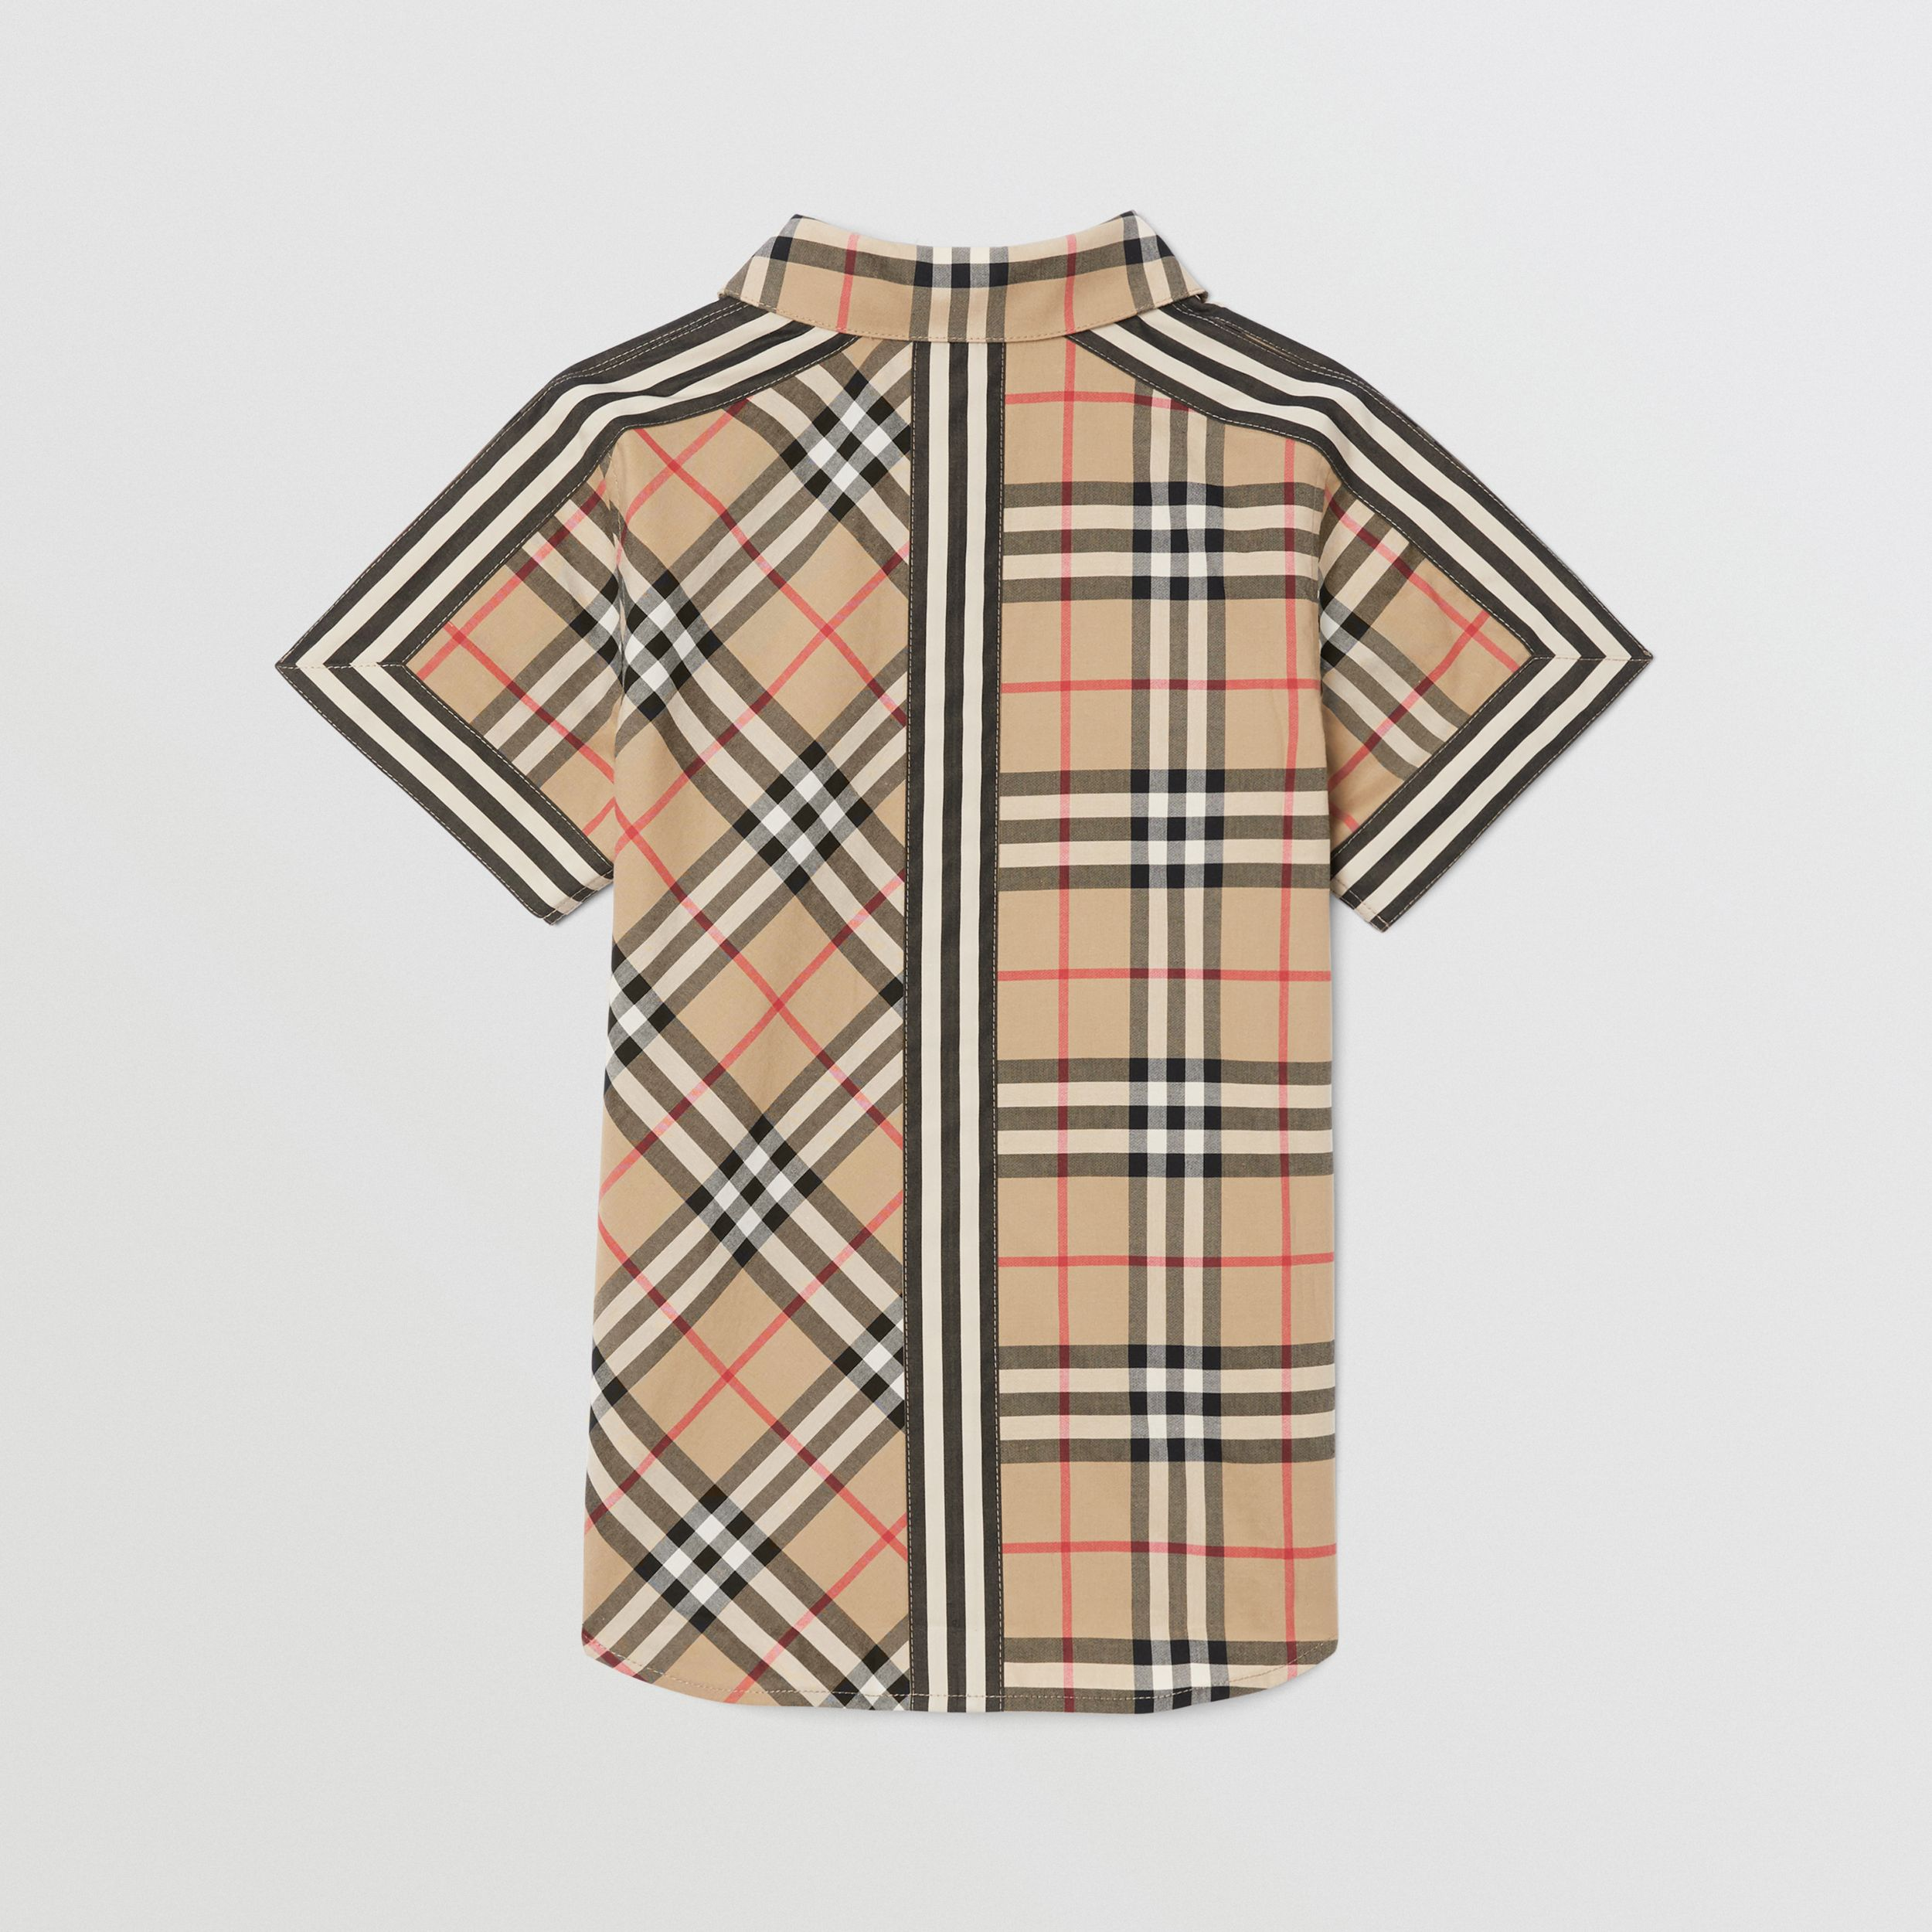 Short-sleeve Vintage Check Patchwork Cotton Shirt in Archive Beige | Burberry - 4